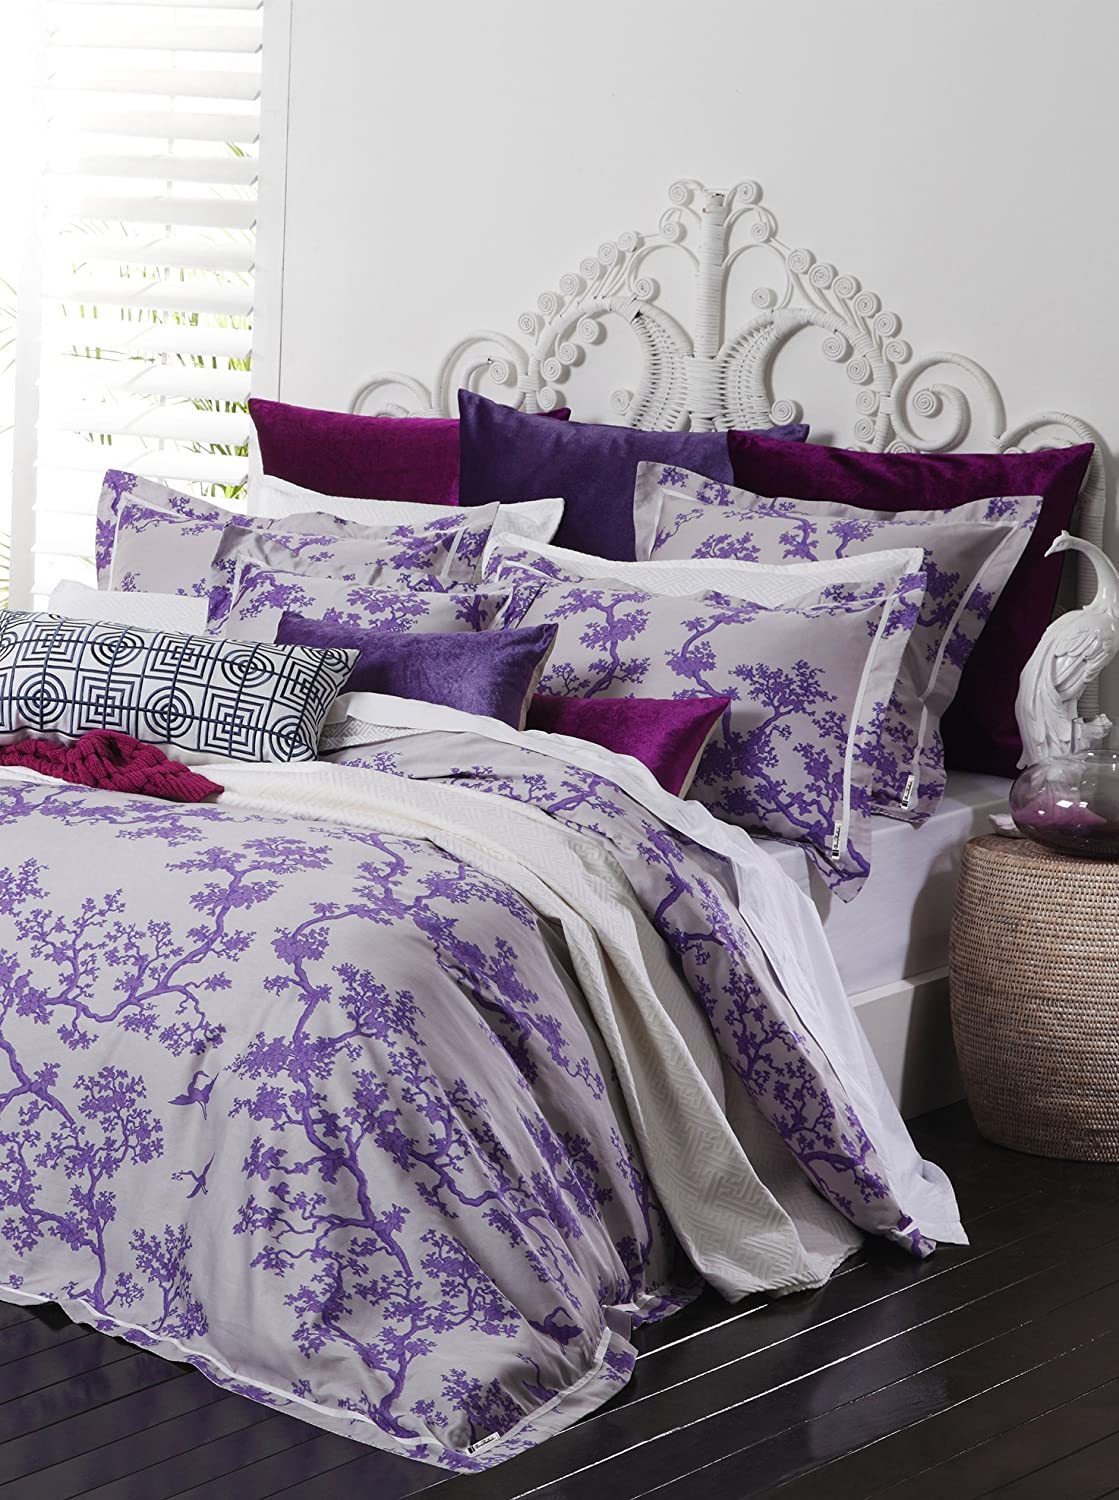 Surya Florence Broadhurst The Crane Duvet Bedding Set, Twin, Violet/Ivory/Light Gray